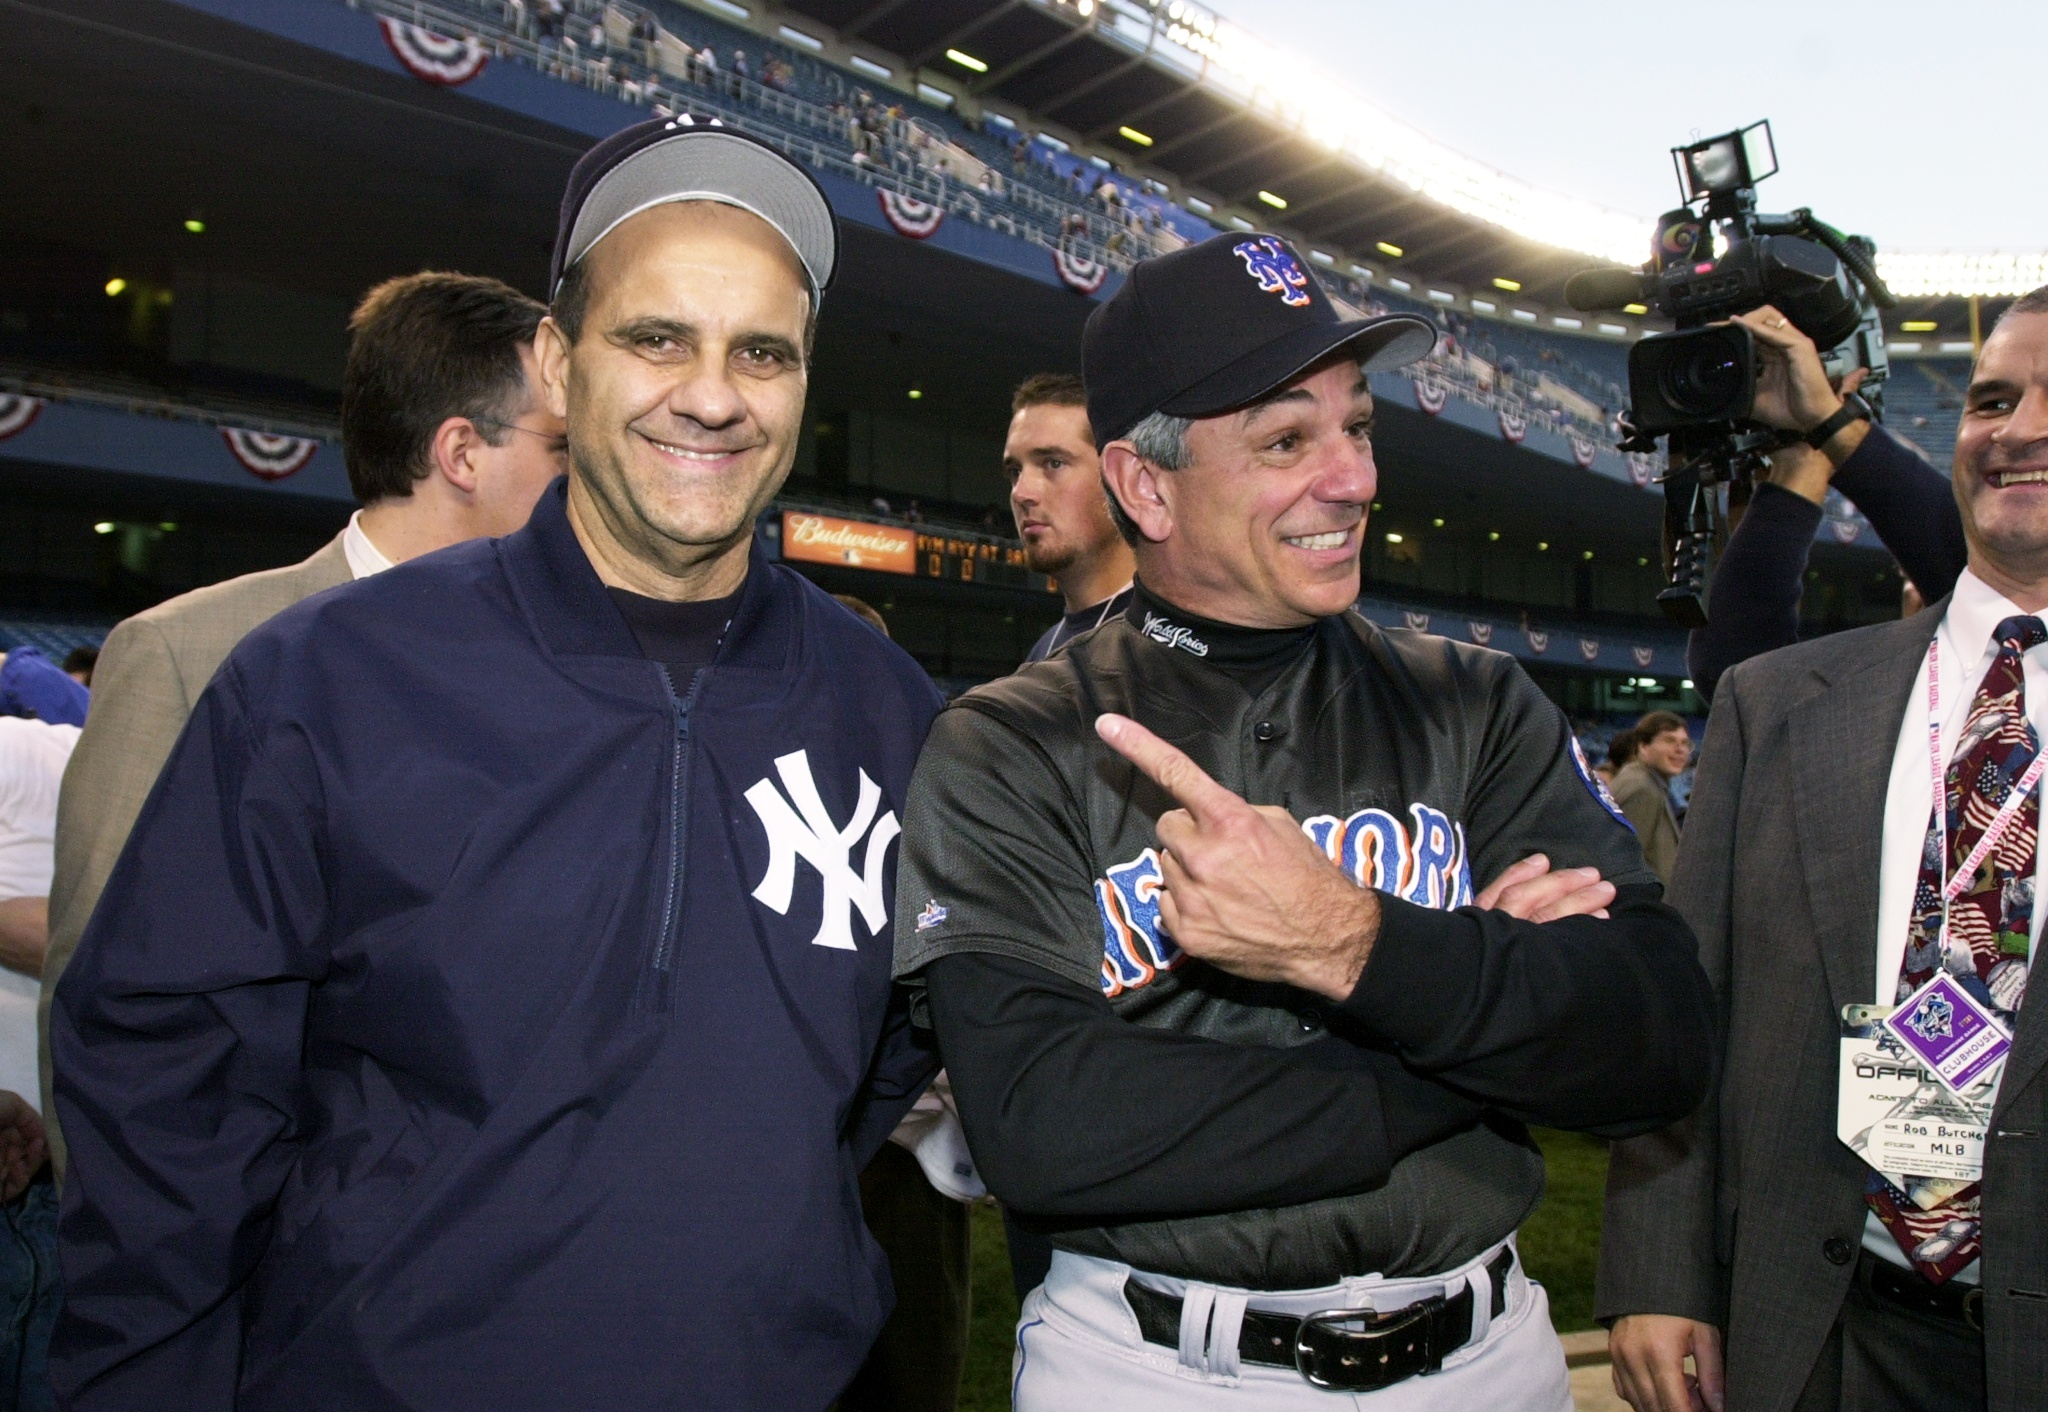 New York Yankees' manager Joe Torre jokes with New York Mets